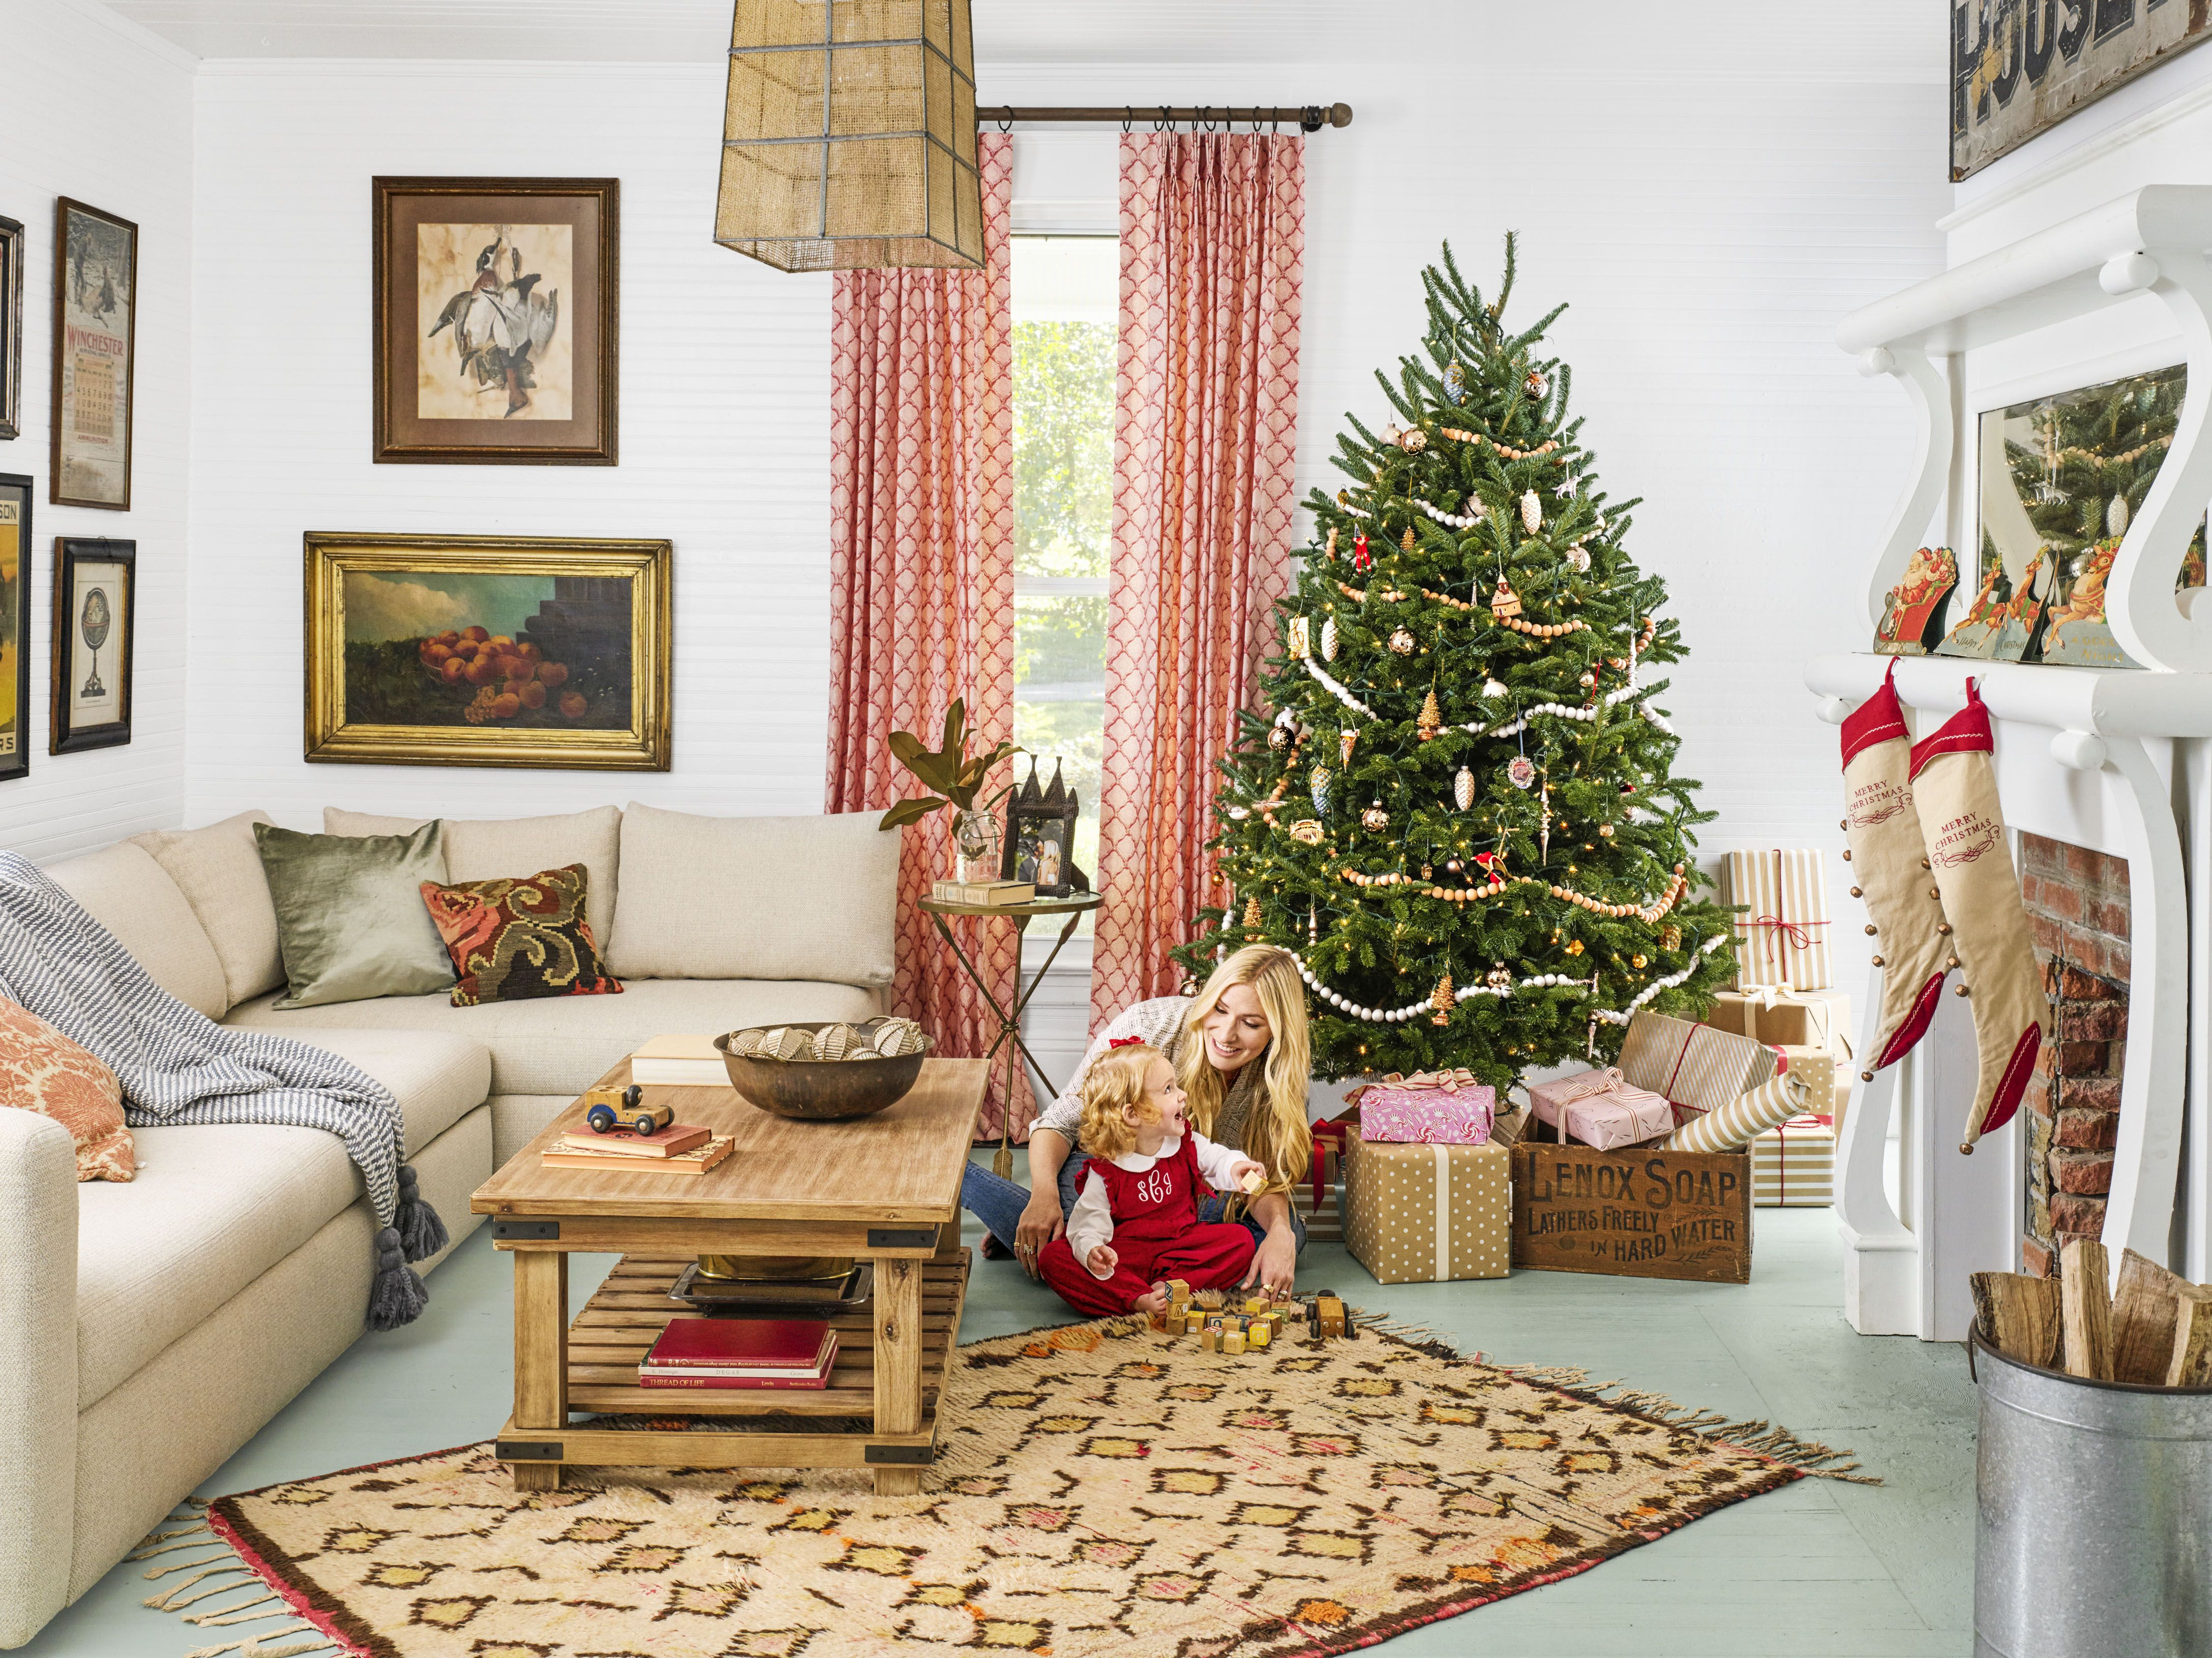 ideas for decorating my living room christmas ashley furniture 110 country decorations holiday 2018